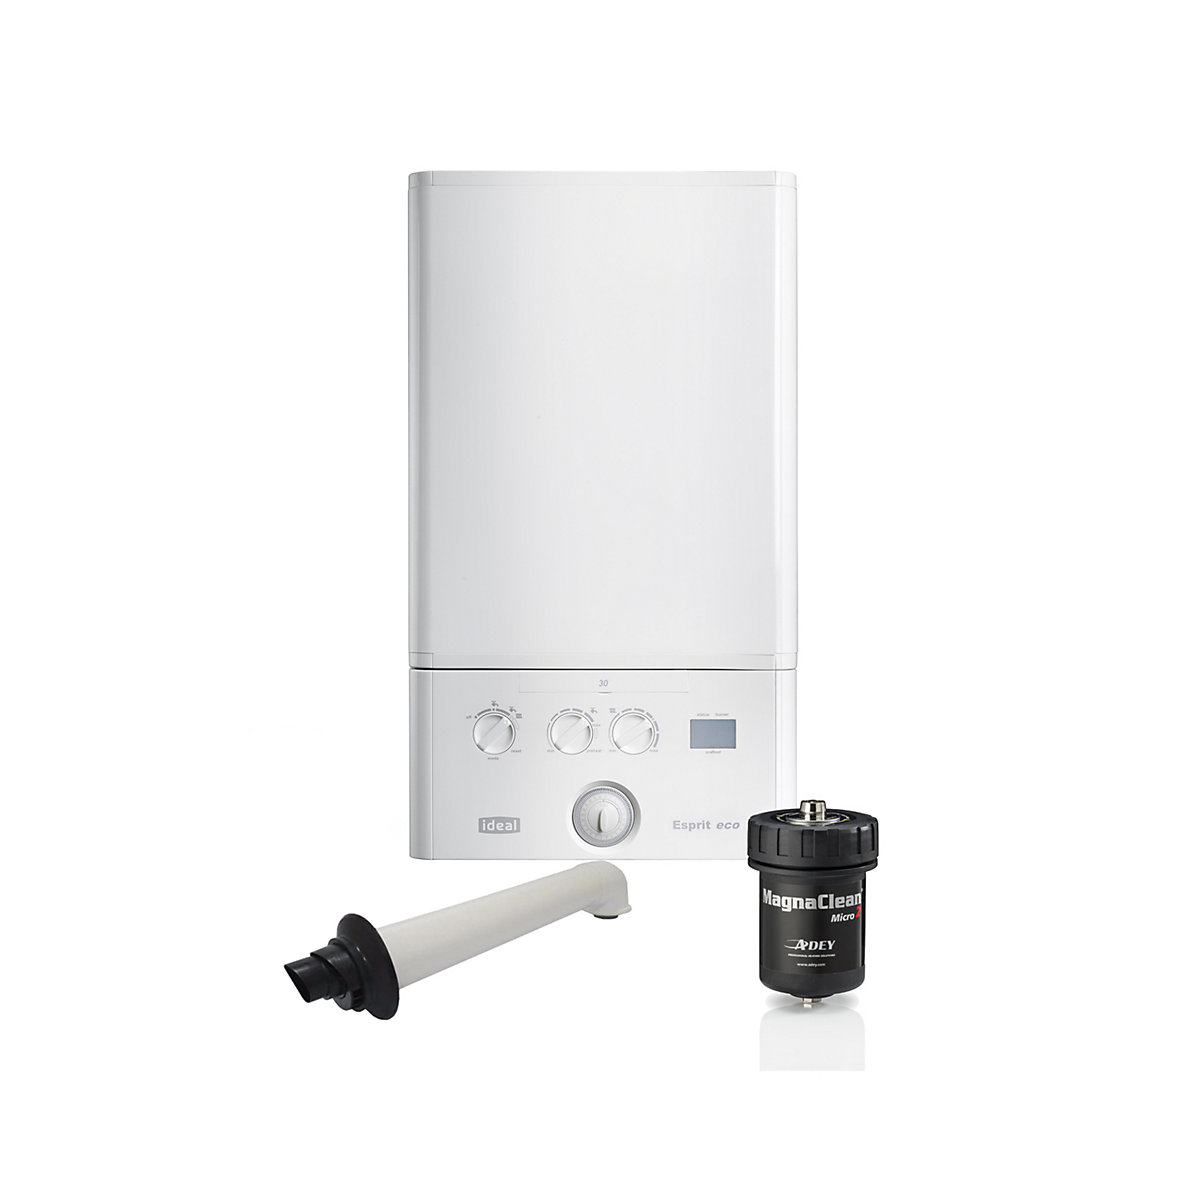 Ideal Esprit Eco 30kW Gas Combi Boiler with Horizontal Flue Chemicals and  Filter 210873